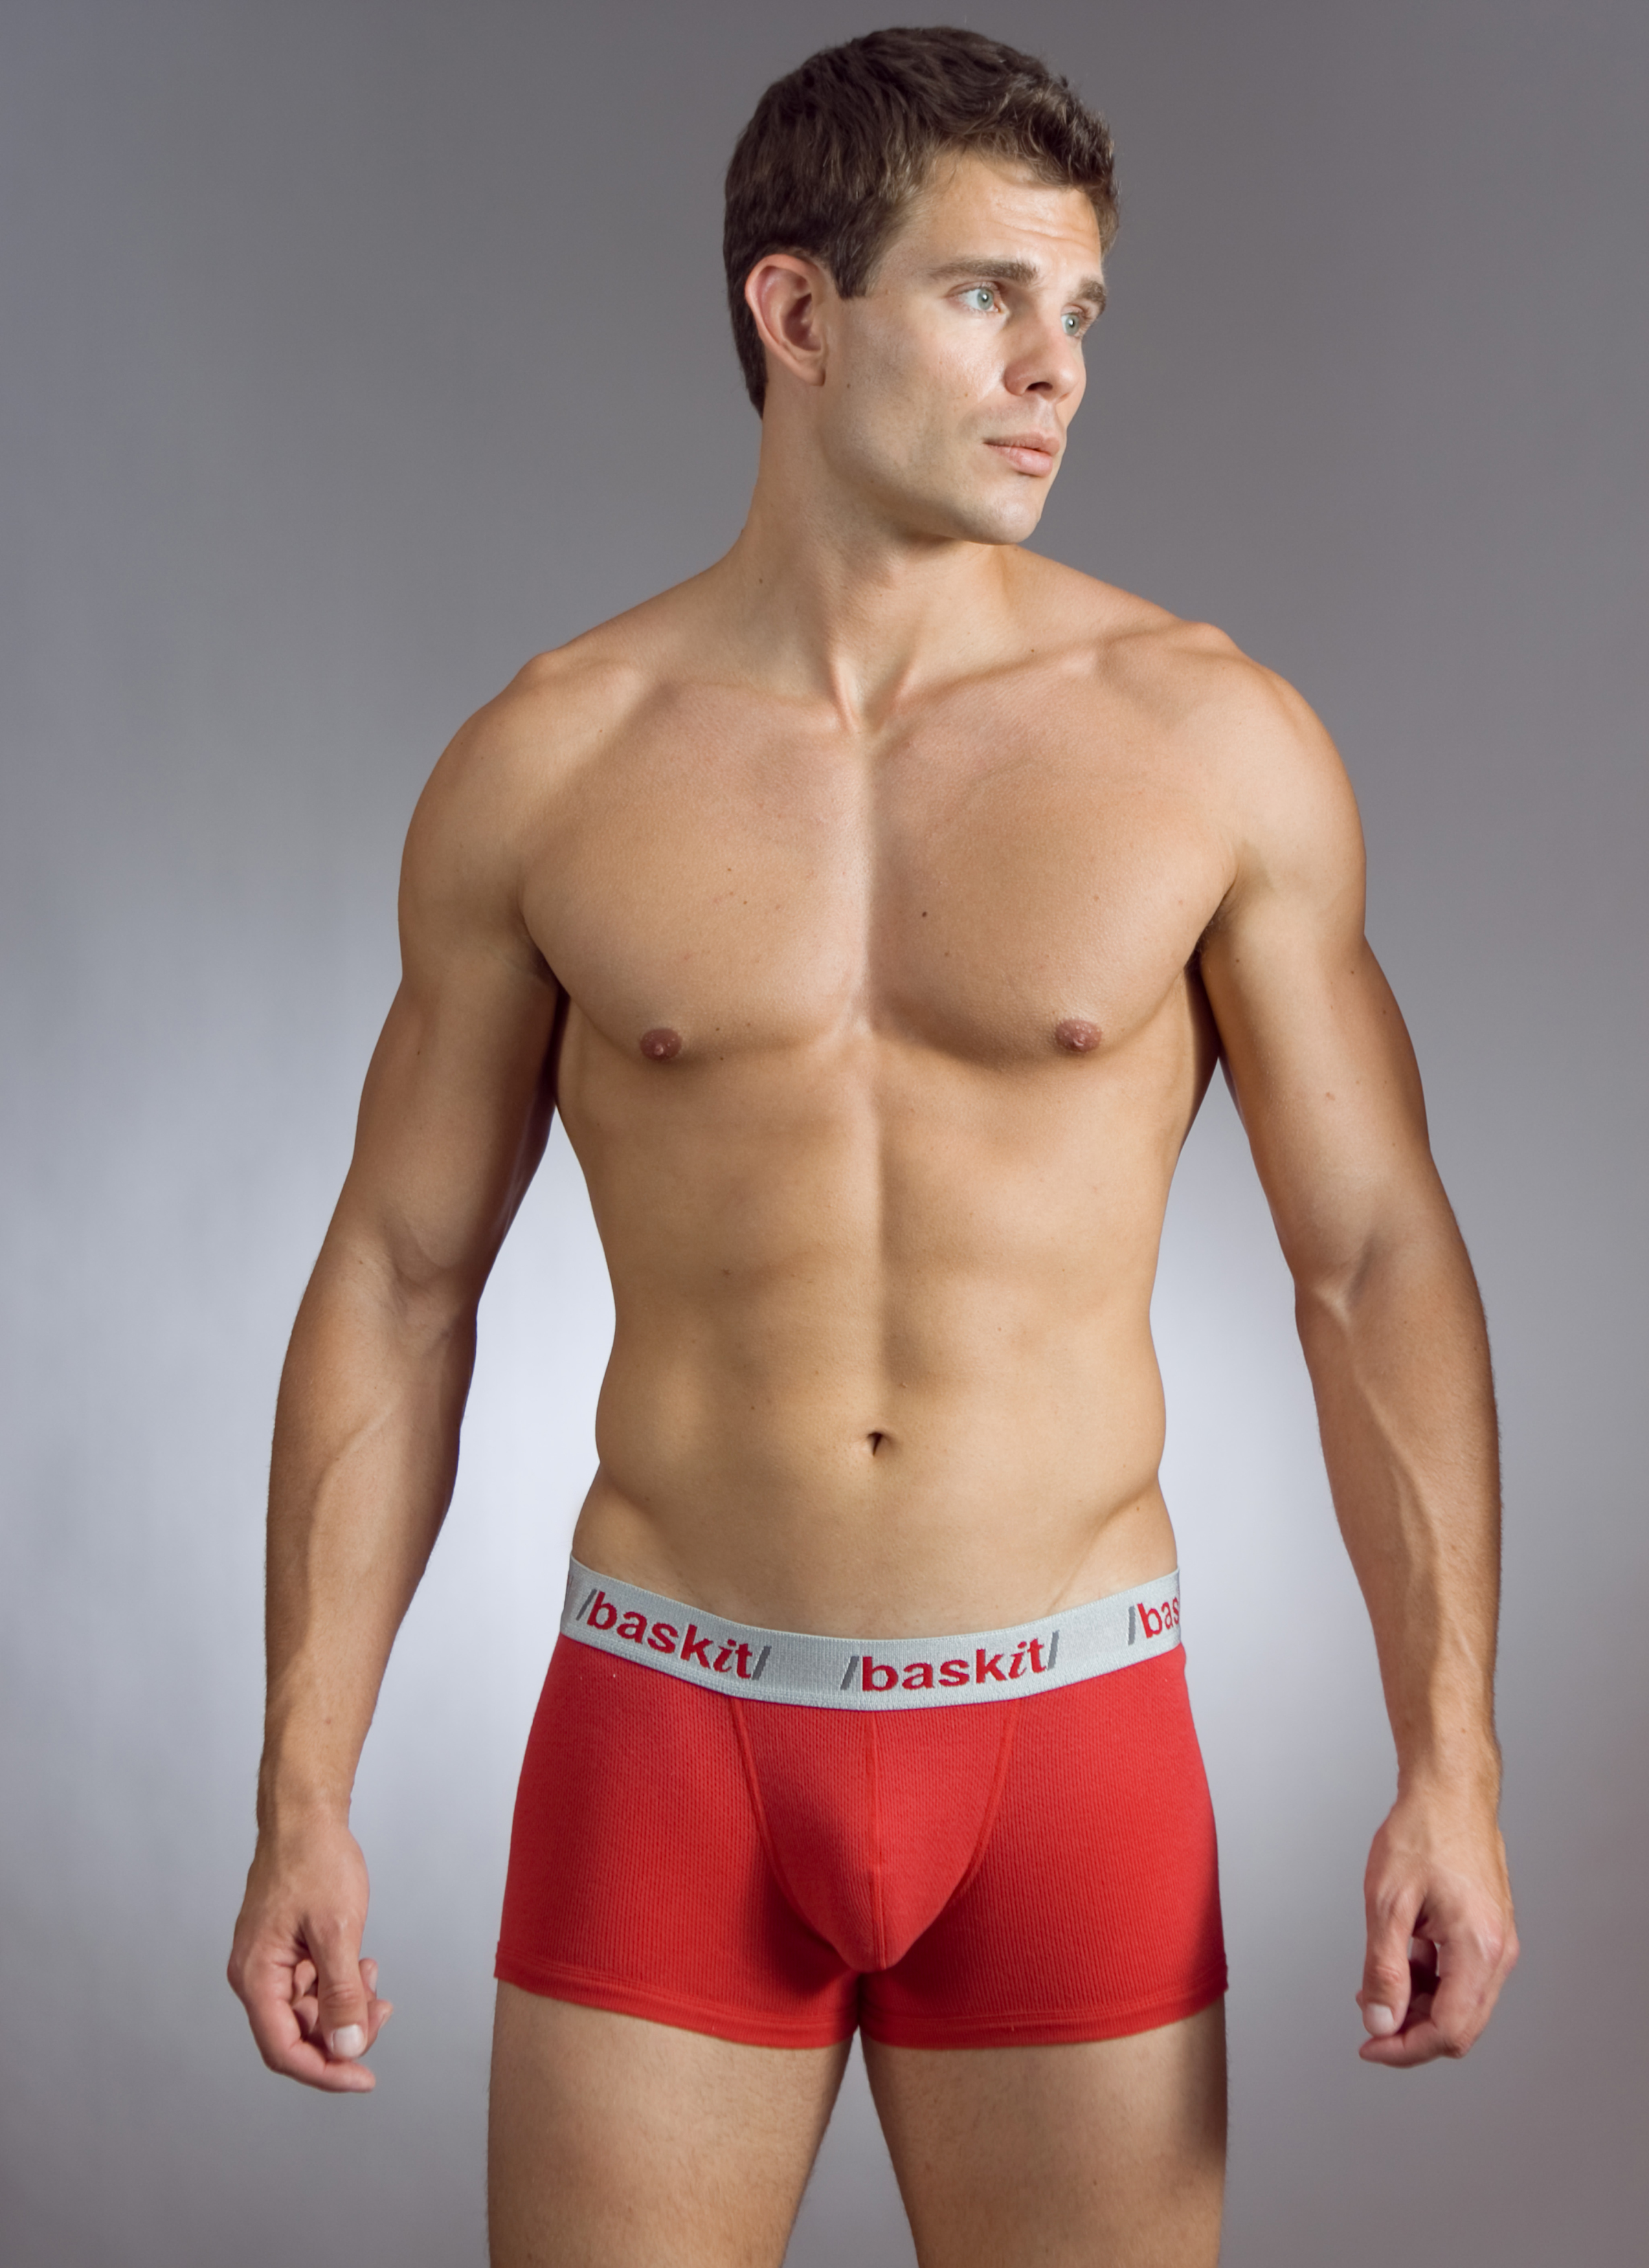 http://fashiontrendystyle0.blogspot.com/2012/07/underwear-mens.html